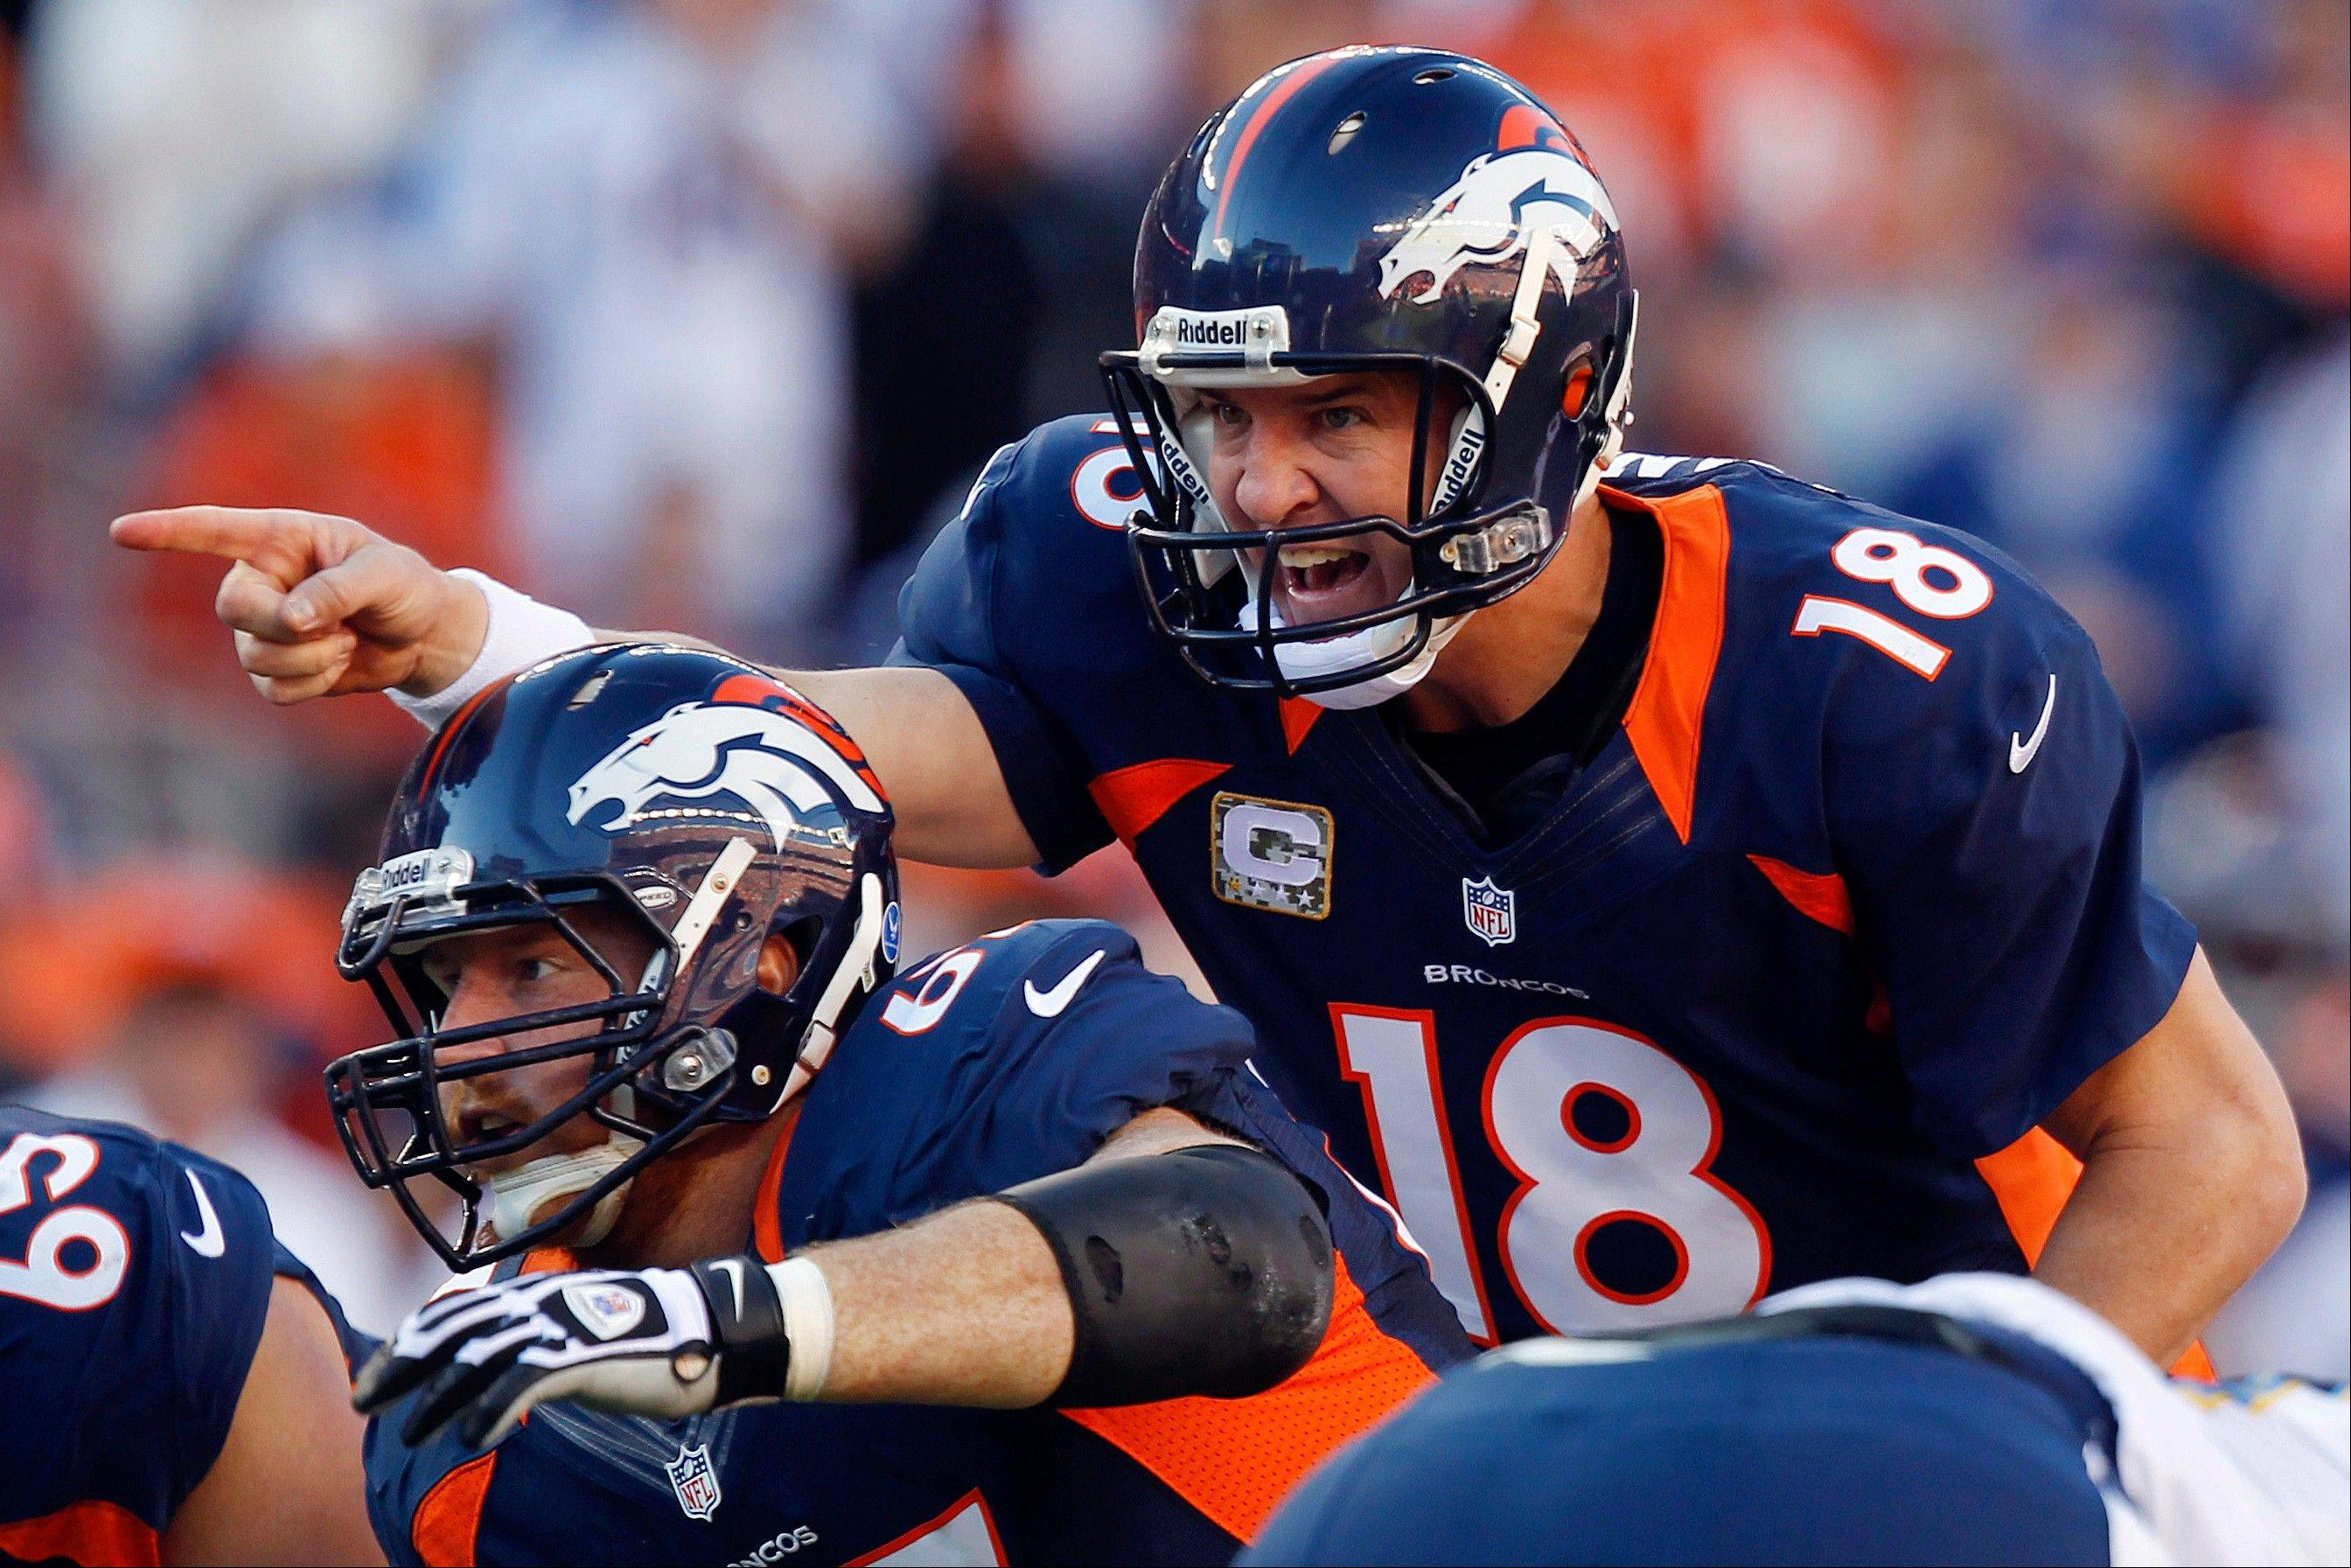 Peyton Manning won a Super Bowl with Indianapolis in 2006. Now he�ll try to lead Denver to another championship.